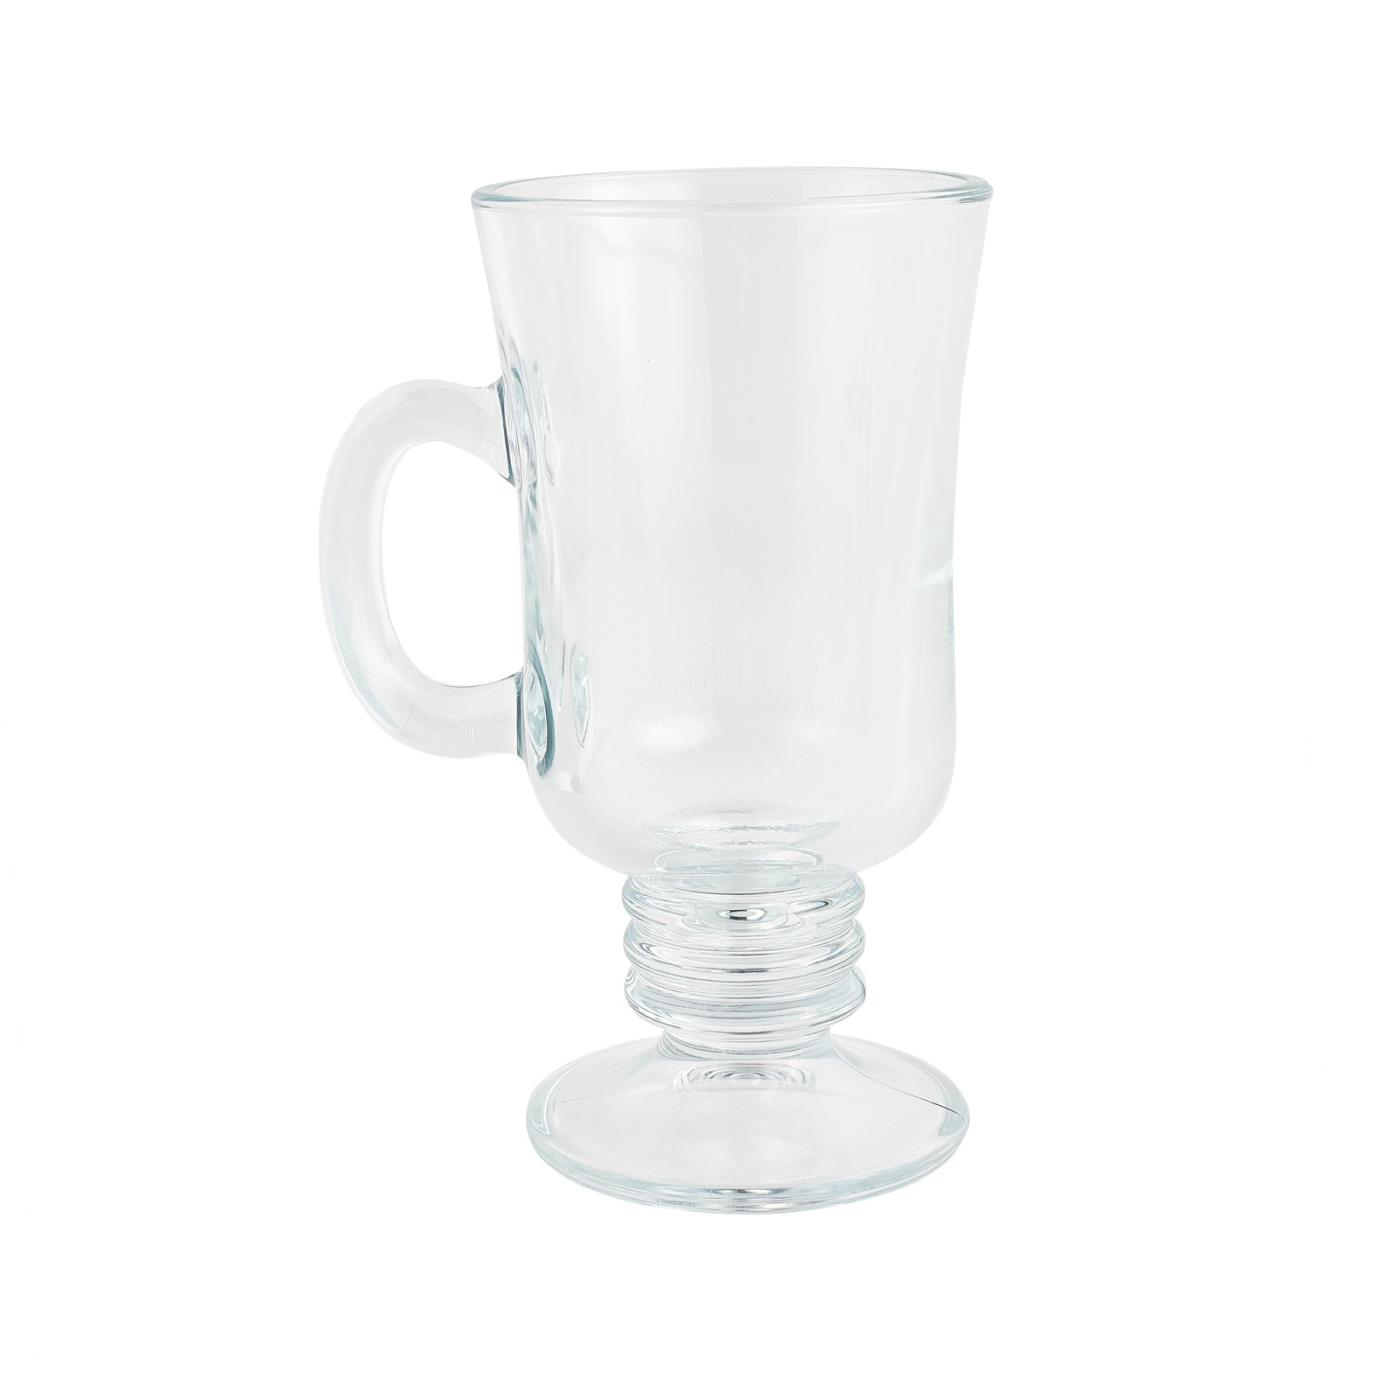 Irish Coffee Mug 8 oz